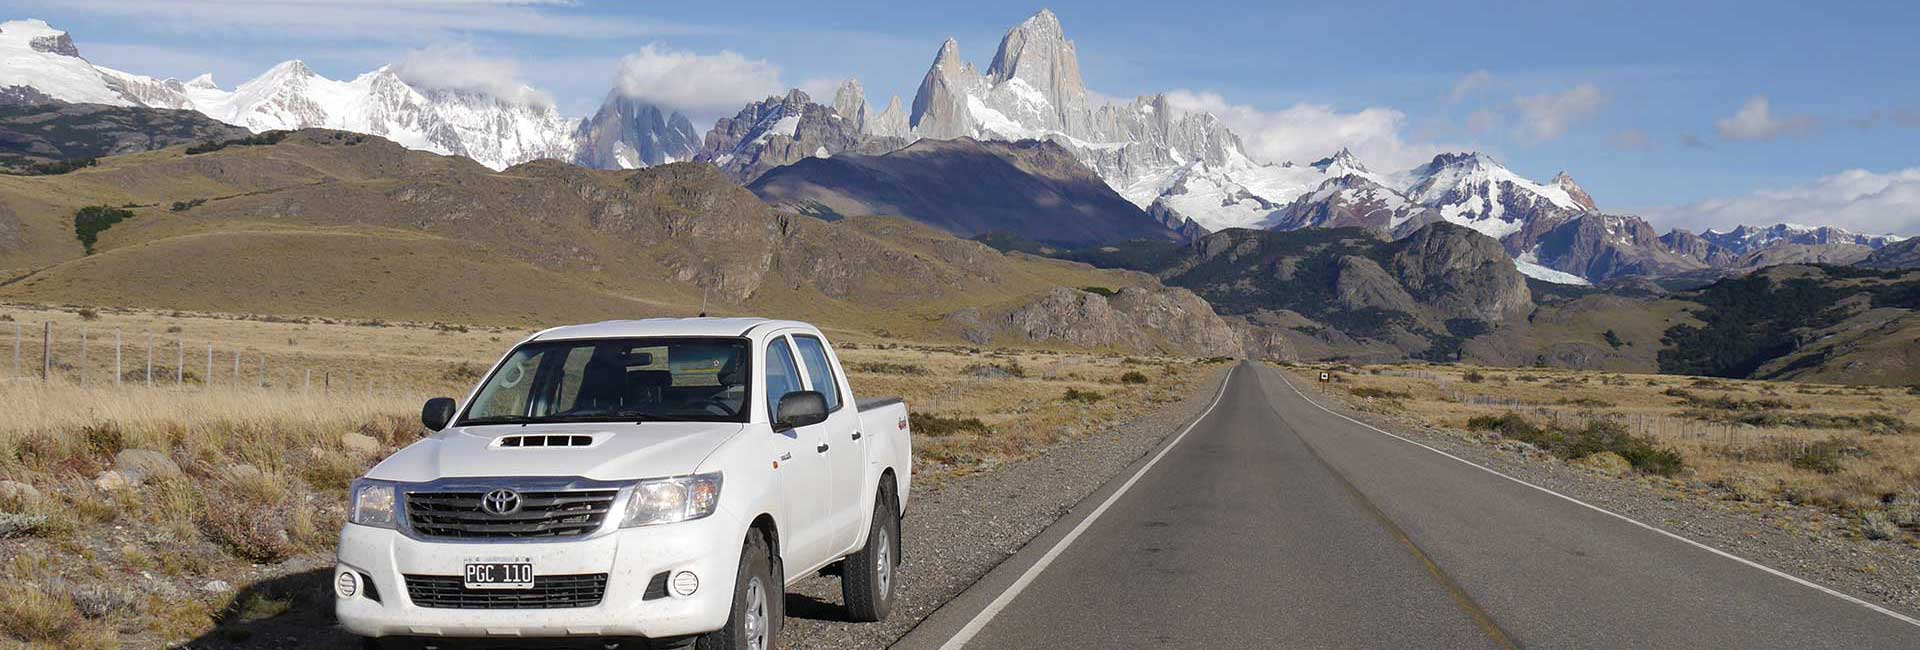 Car in front of El Chaltén